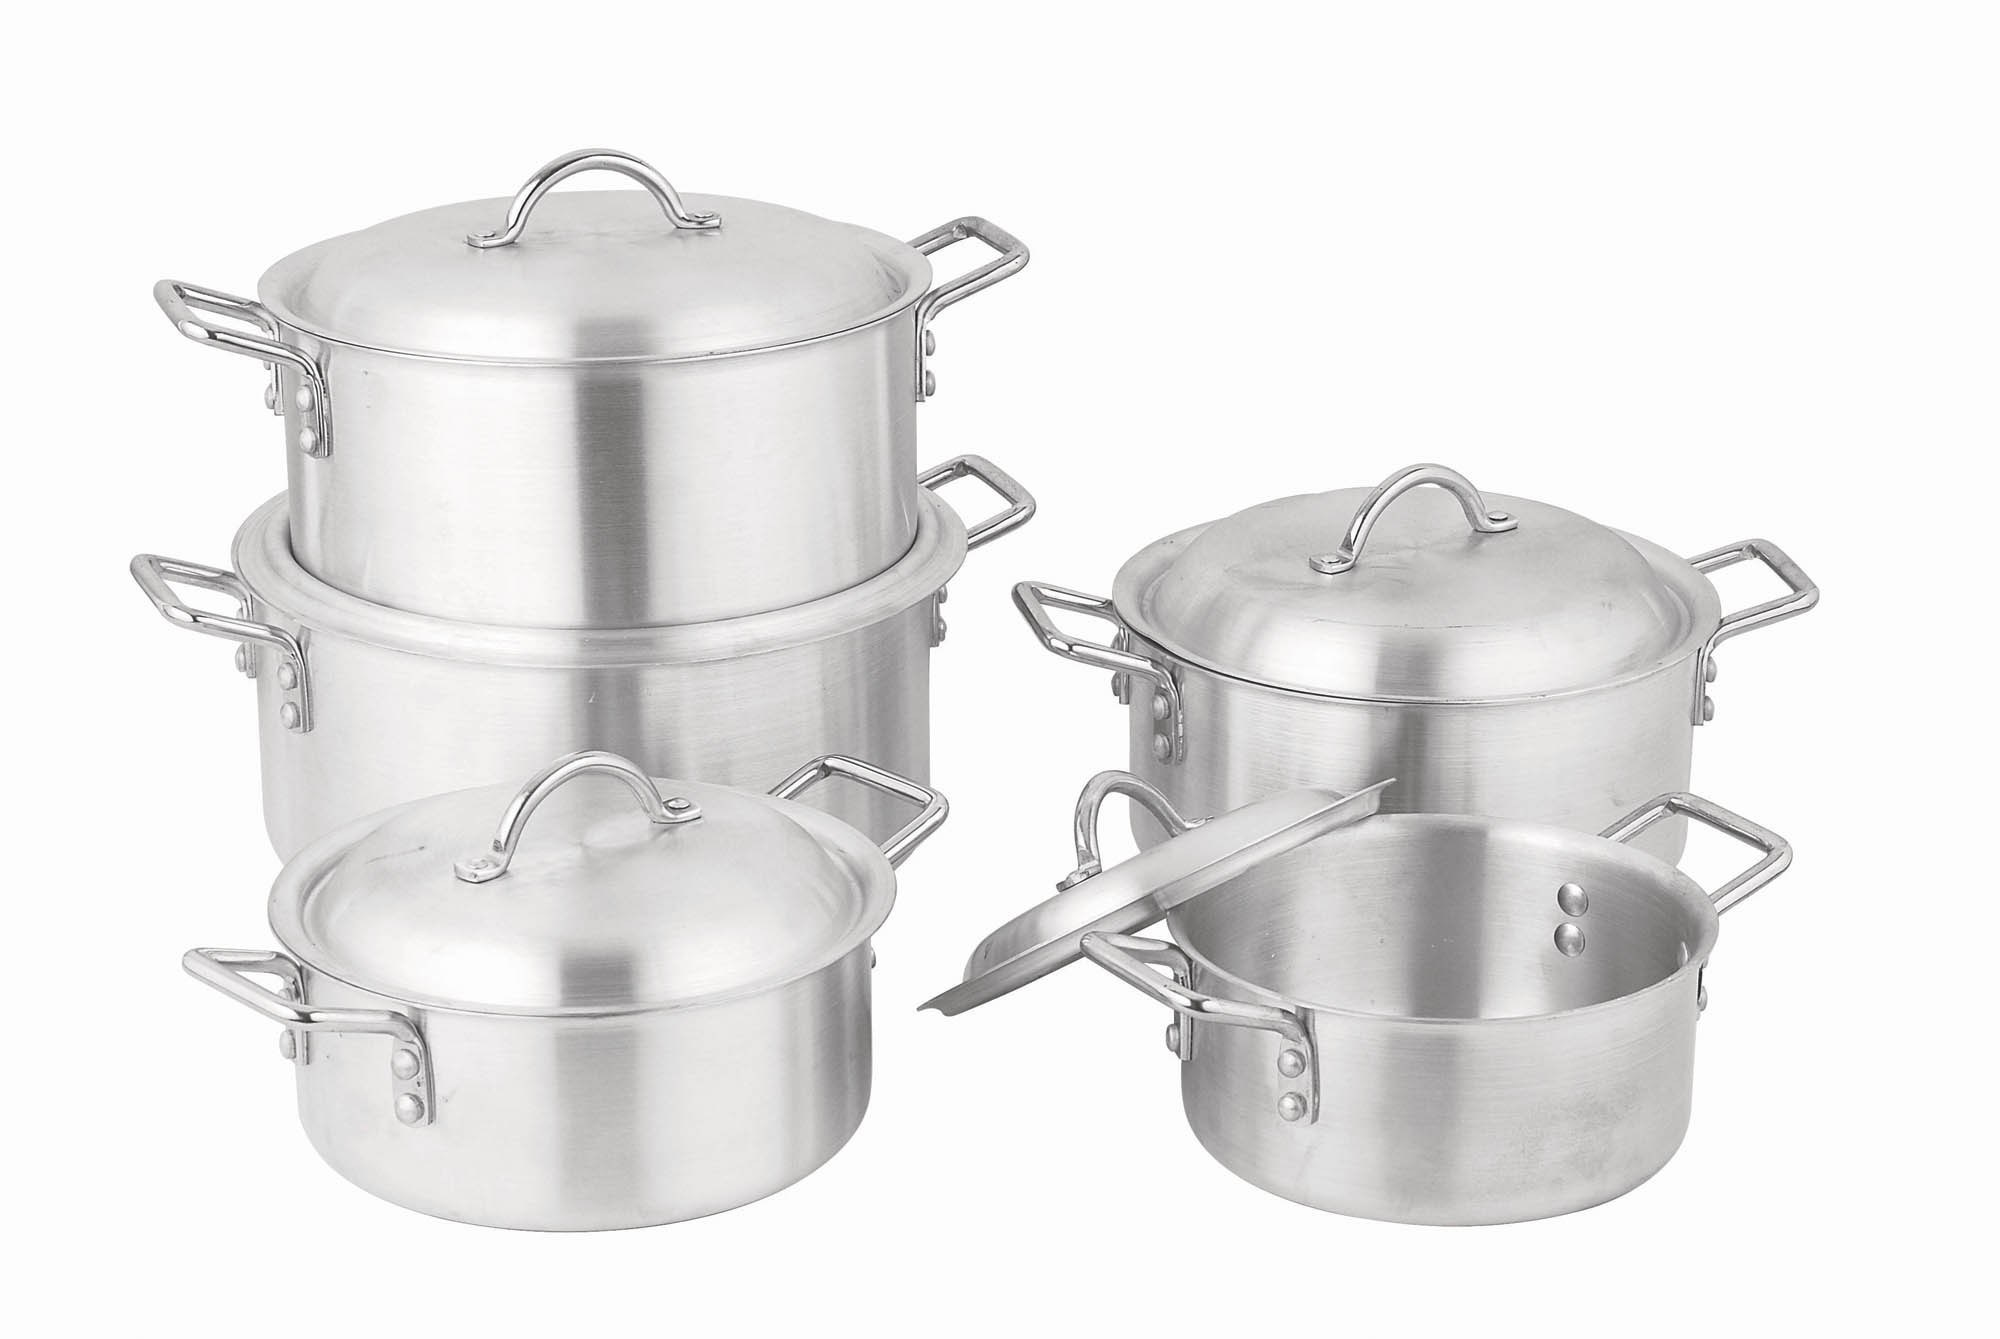 China aluminum cooking pot yk cs011 photos pictures for Cuisine aluminium